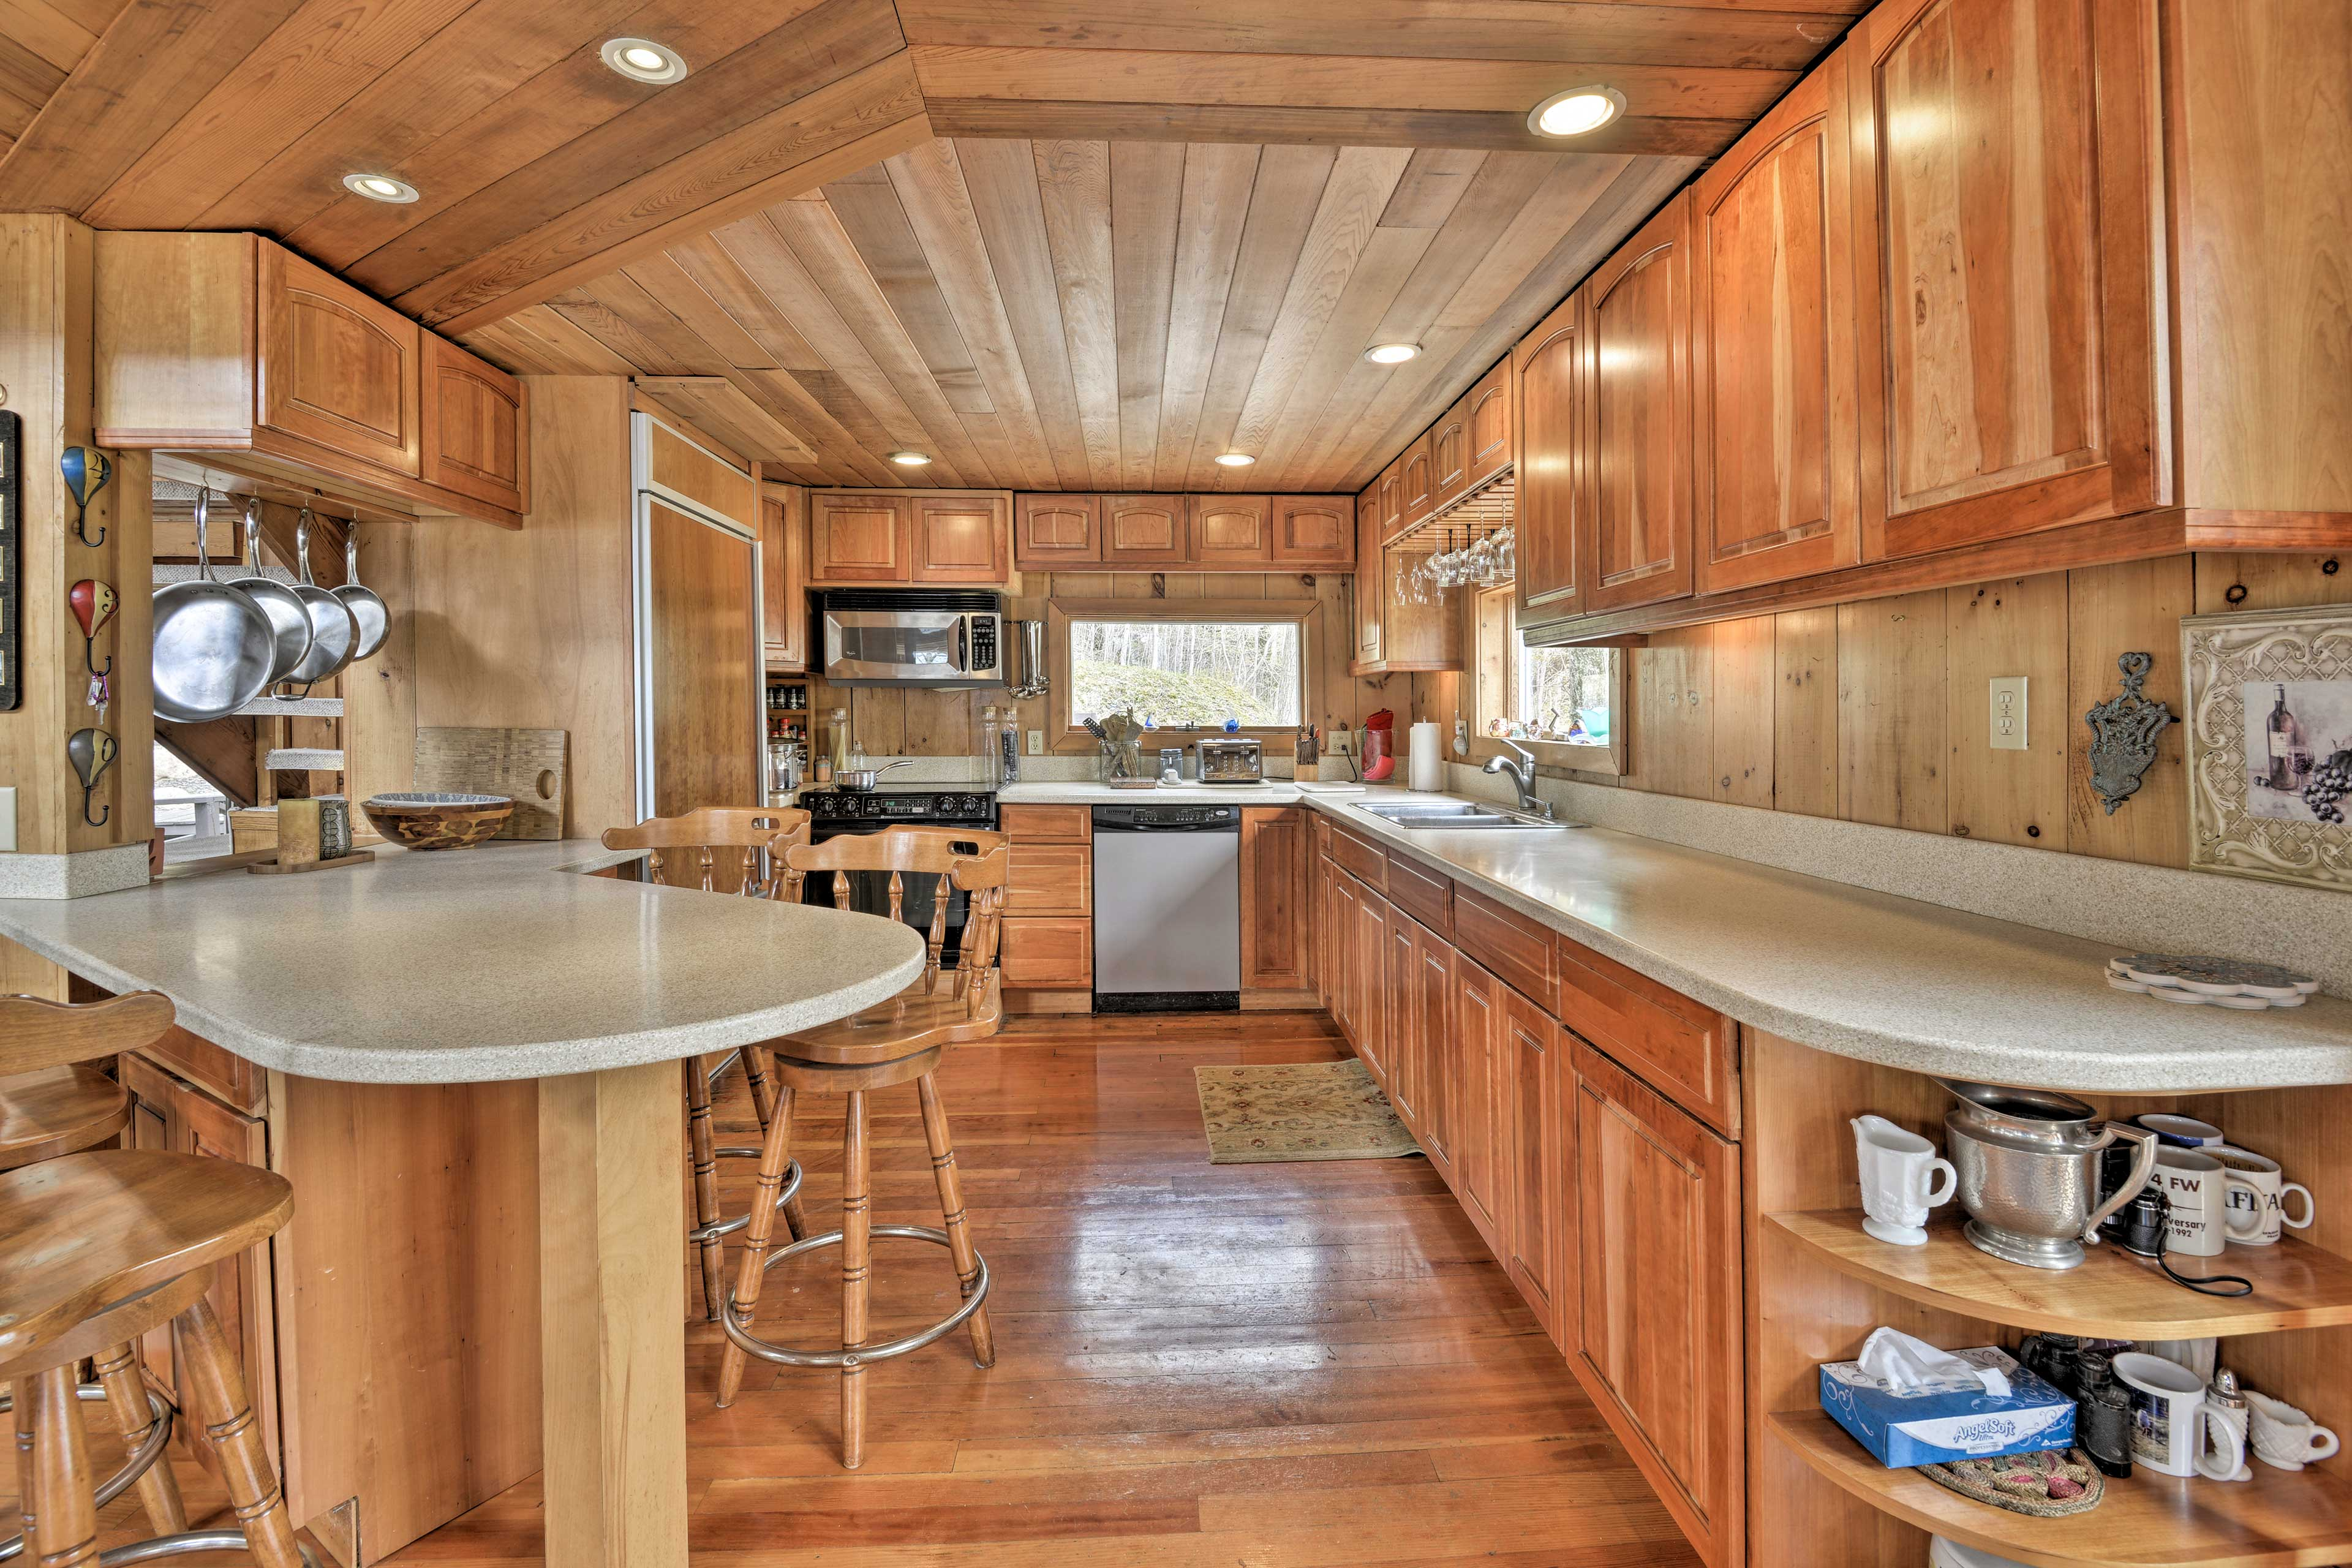 The fully equipped kitchen features a 4-person bar and ample counter space.